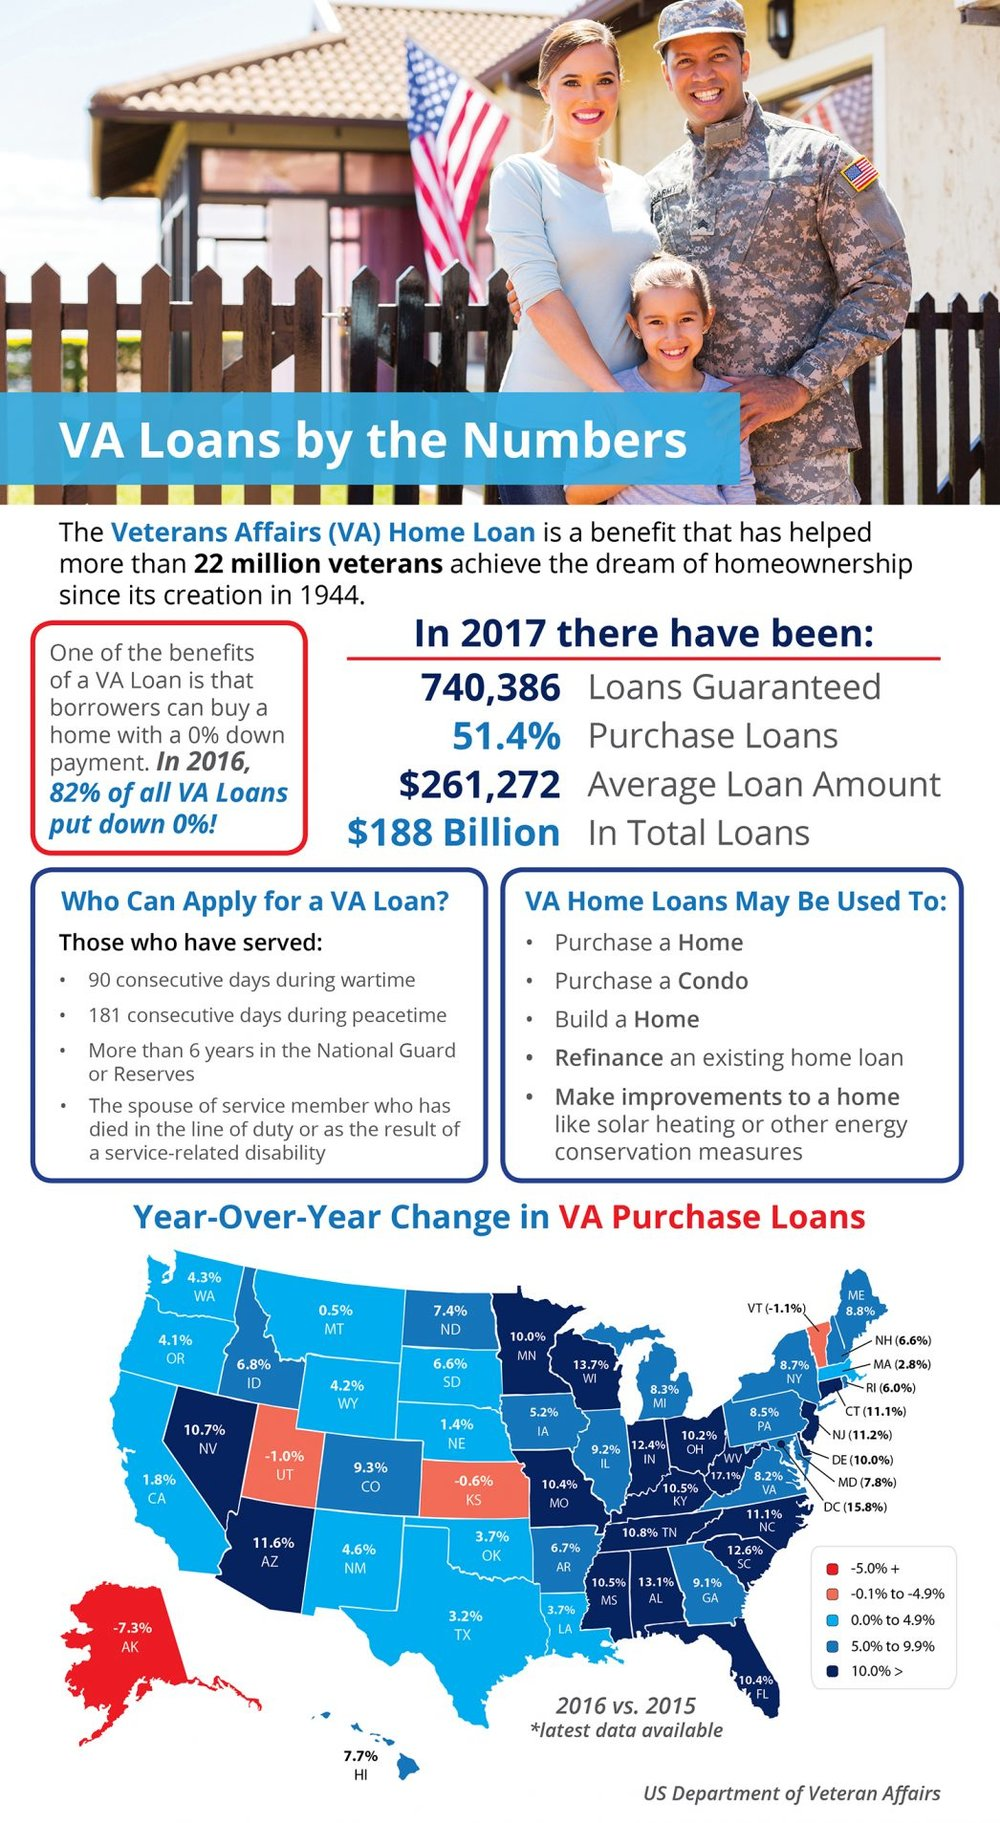 VA-Loans-by-the-Numbers-STM-1046x1907.jpg